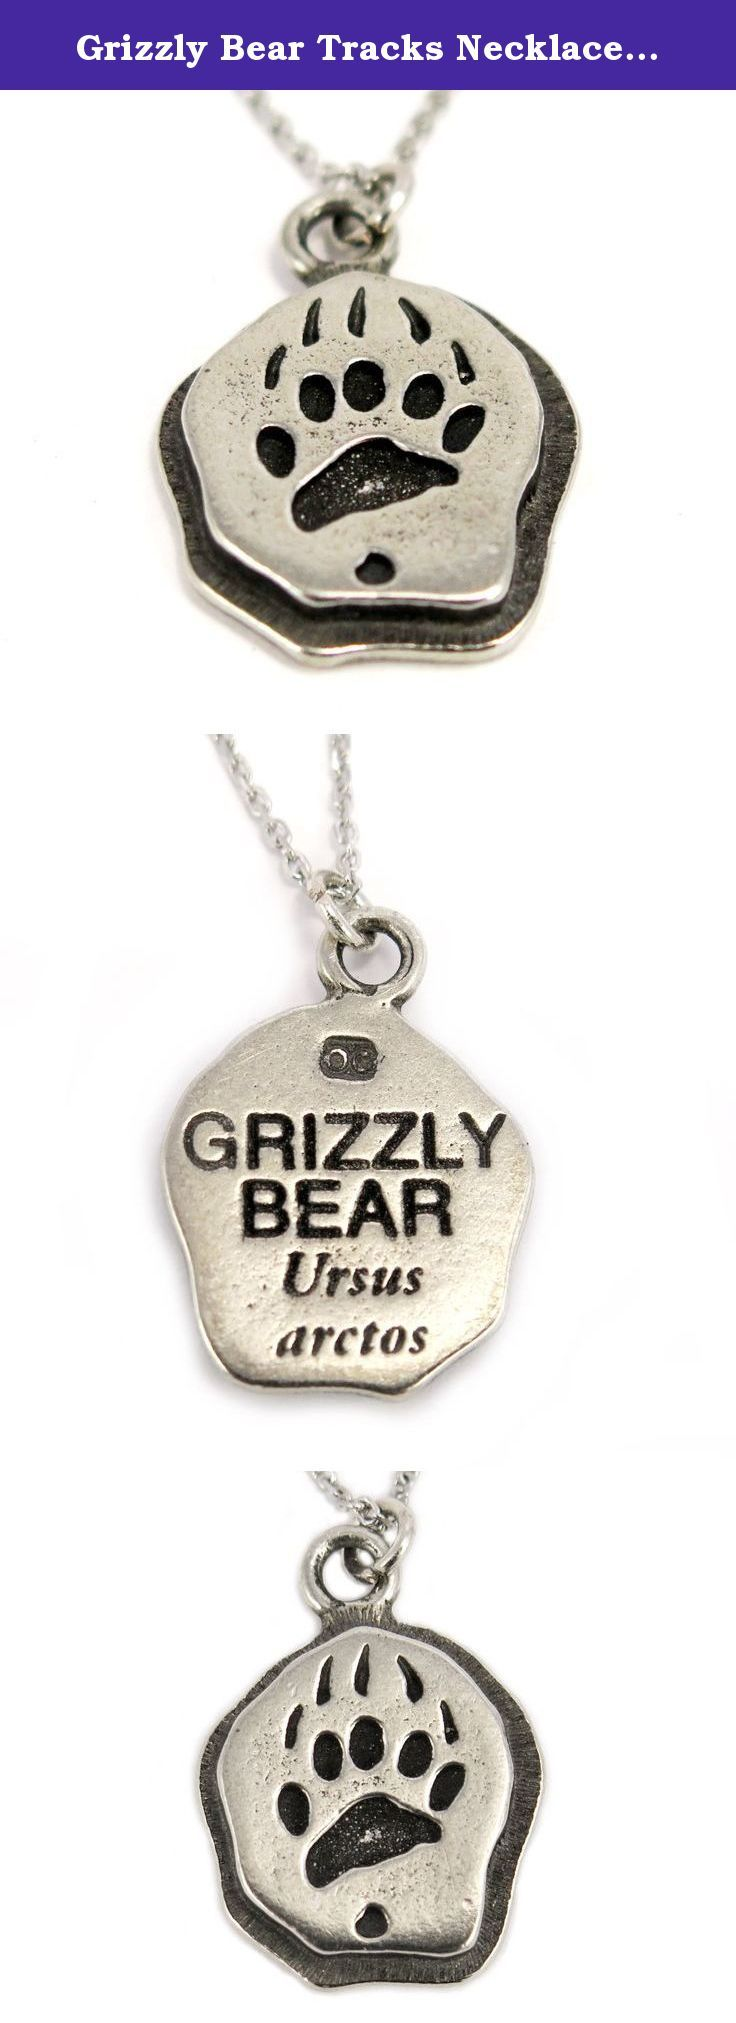 Grizzly Bear Tracks Necklace, Stainless Steel Chain. The pendant has a smooth finish to it with strong contrast. The grizzly bear tracks has a unique shape like no other animal. The grizzly bear is a symbol of power, physical strength, and integration.